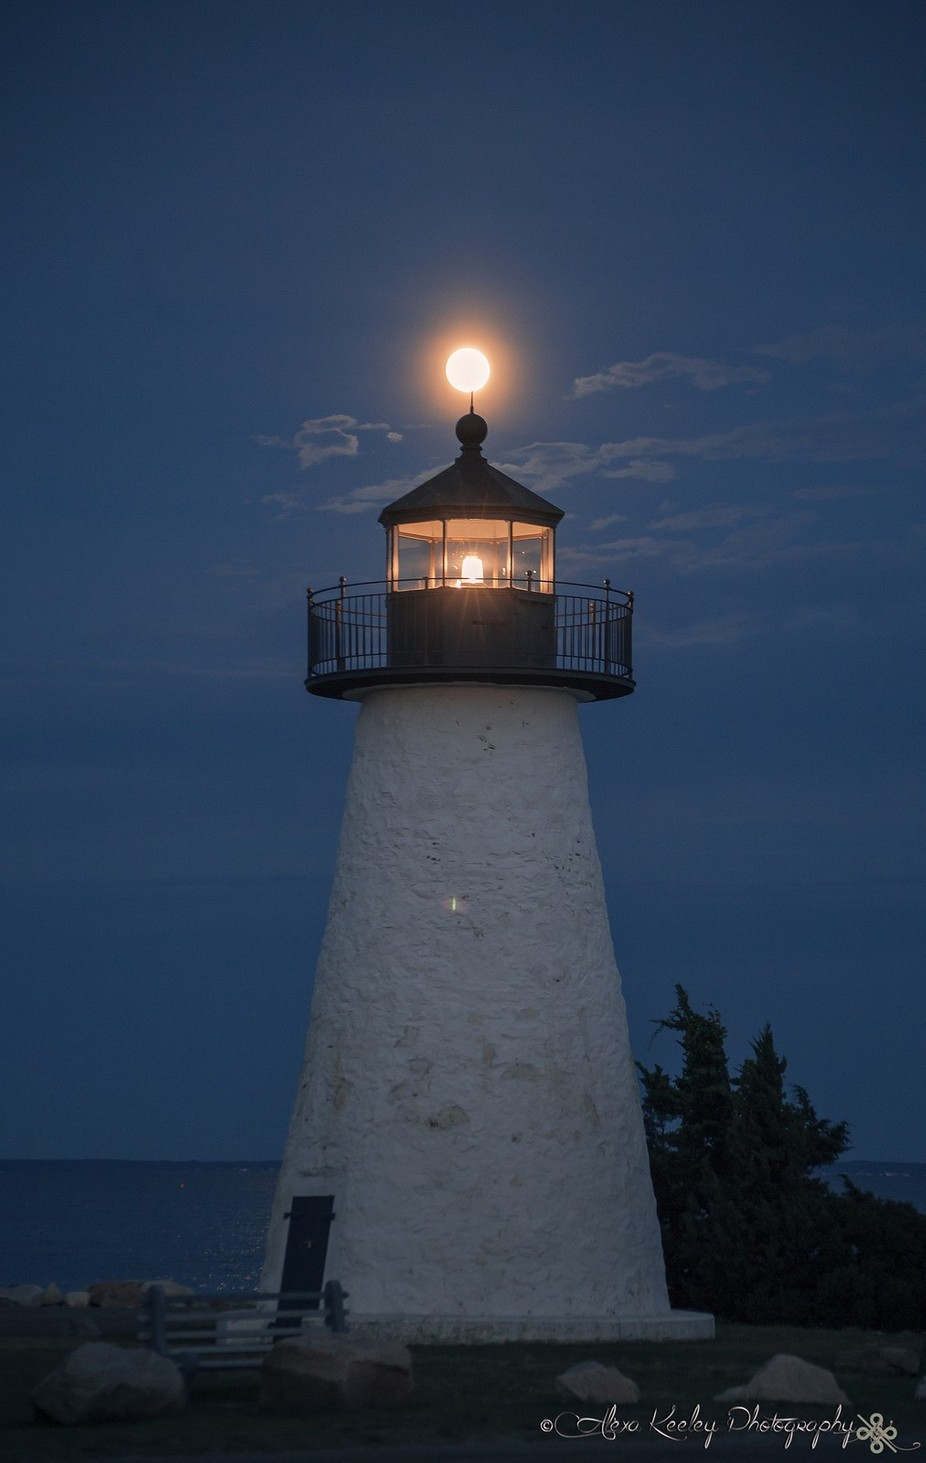 Moonlit Lighthouse by keeley15lf - Circle Games Photo Contest